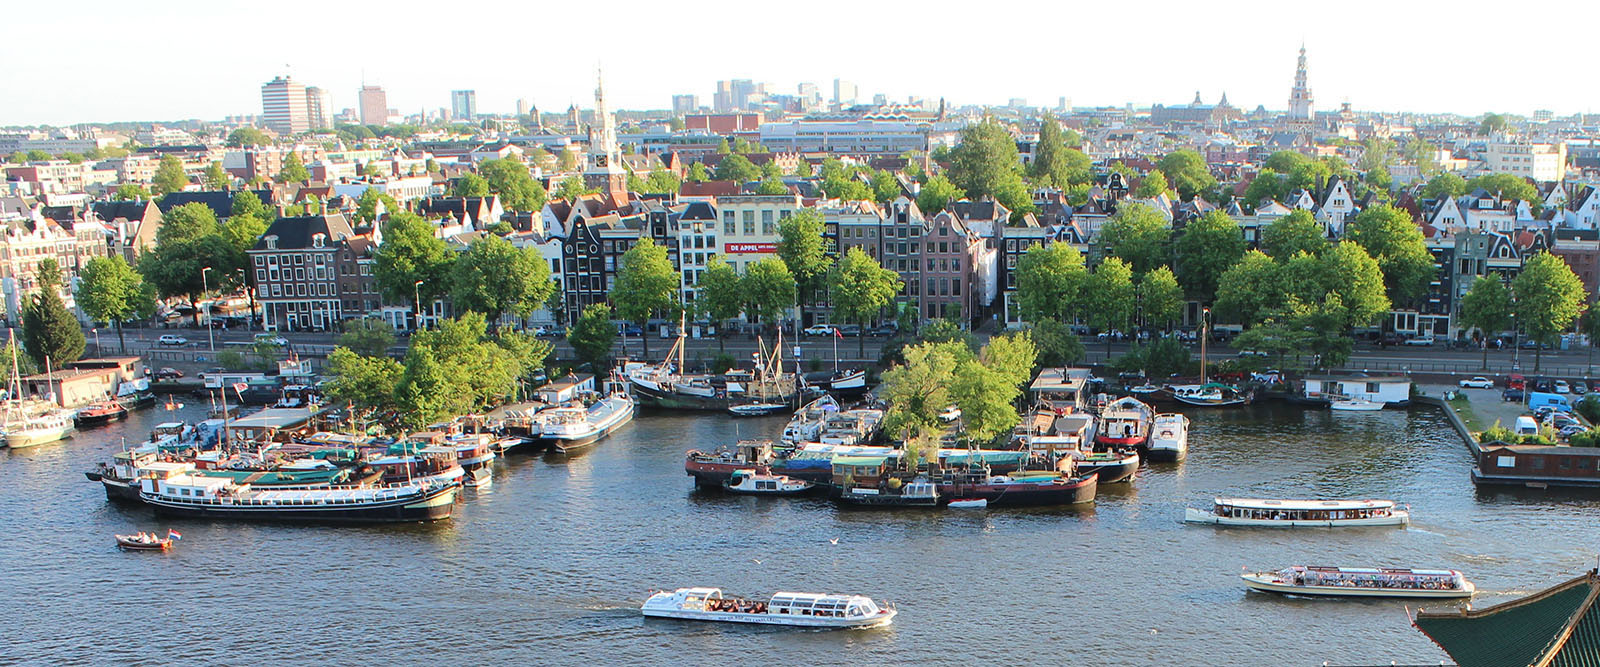 An Amsterdam Panorama - the city from afar with water, land, boats, buildings and trees.